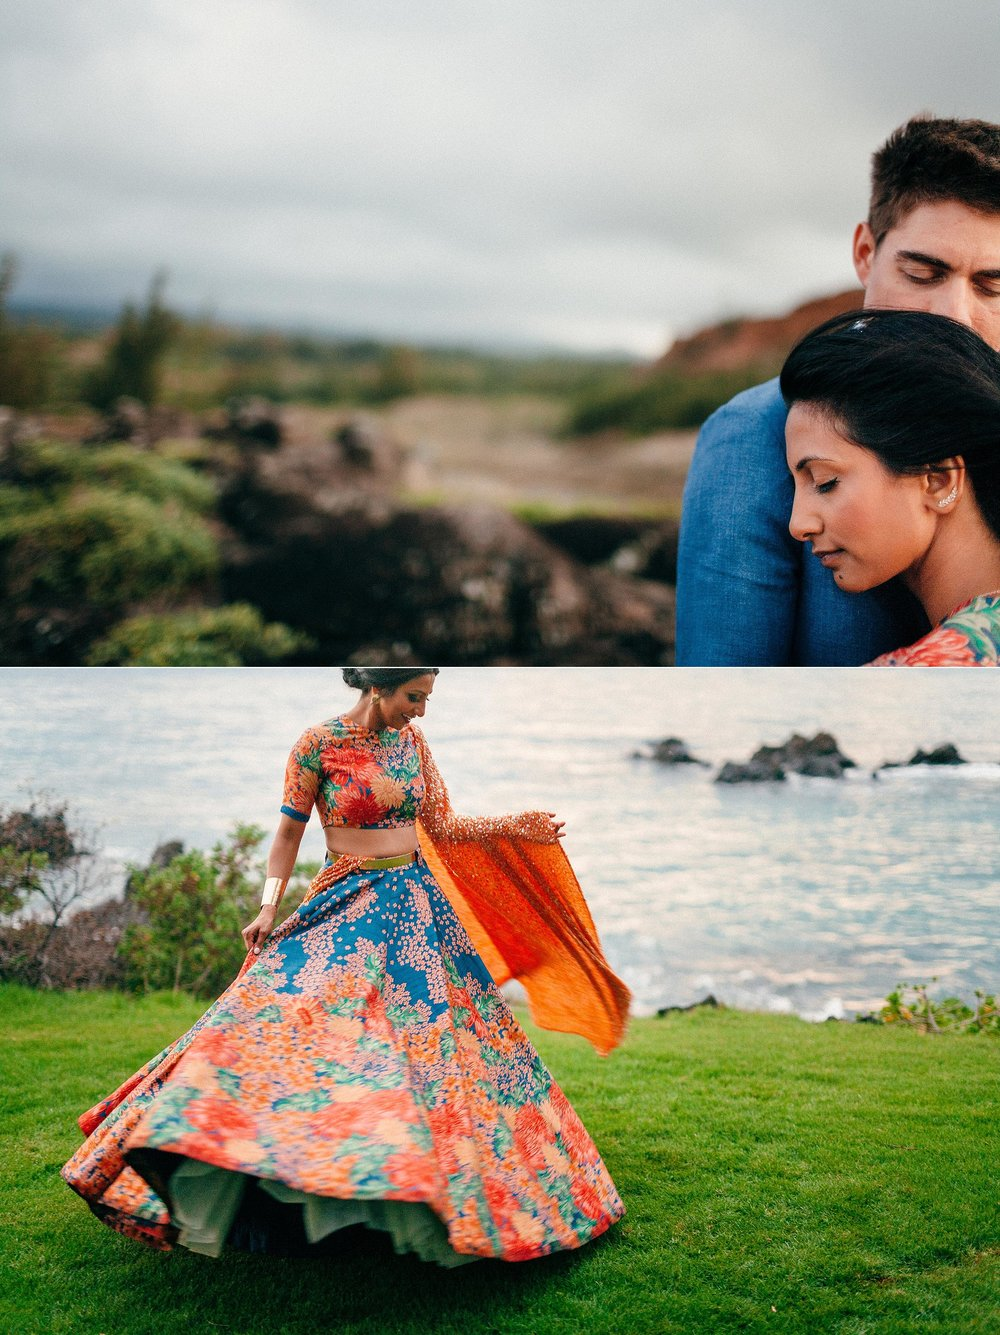 Maui-Hawaii-Indian-Wedding-at Sugarman-Estate-Floral-Dress-and-Colorful-Details_0027.jpg